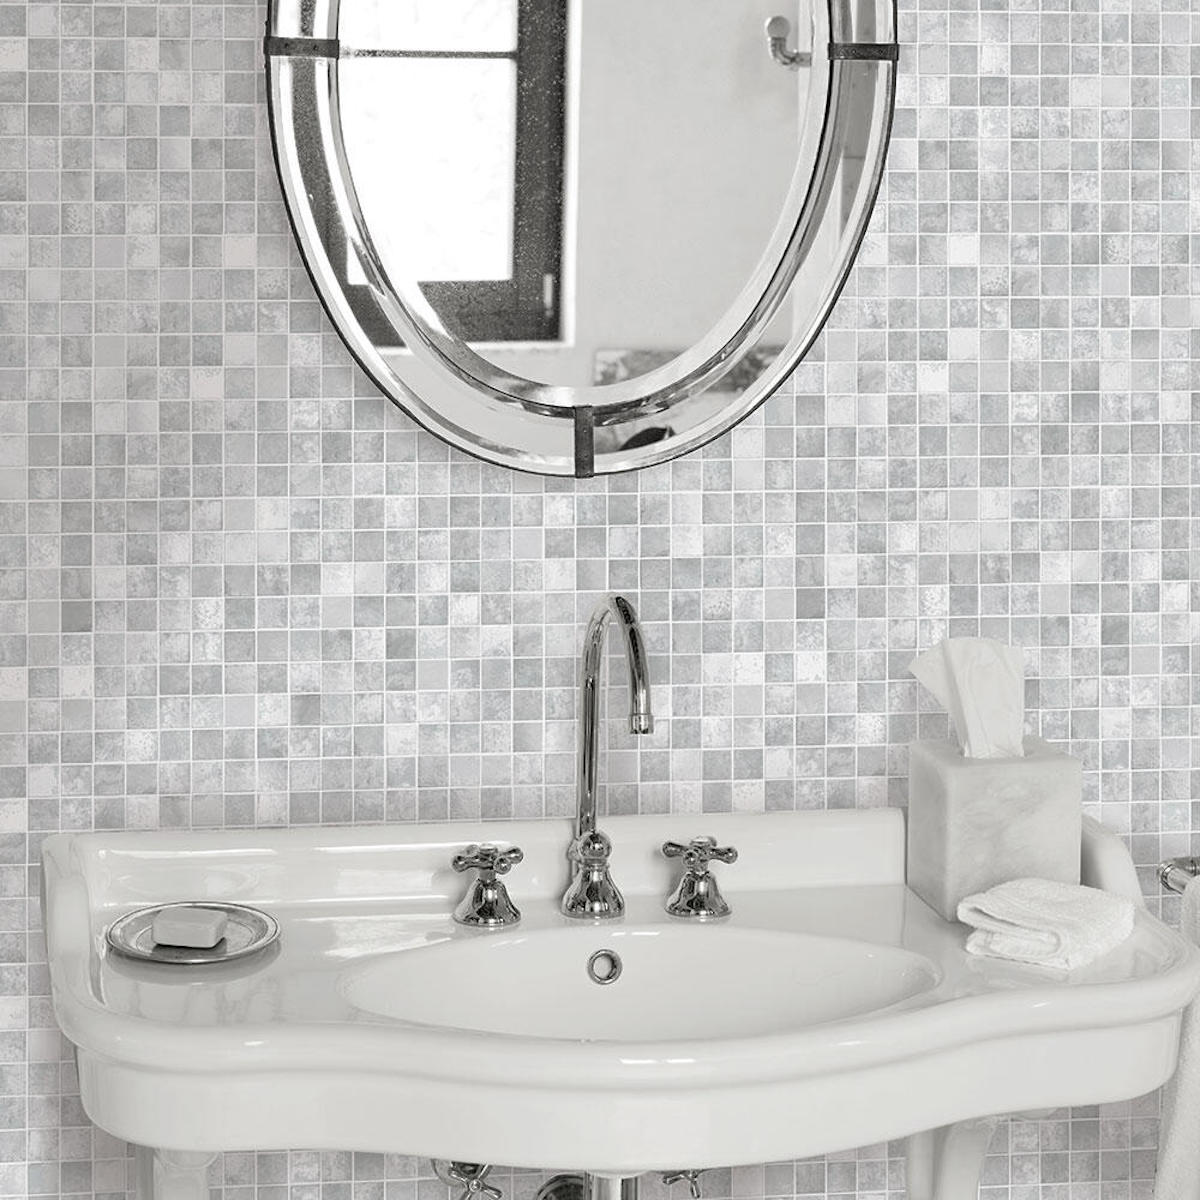 grey scale colored Tempaper Mosaic Tiles Grey Peel and Stick Wallpaper on bathroom wall with vanity